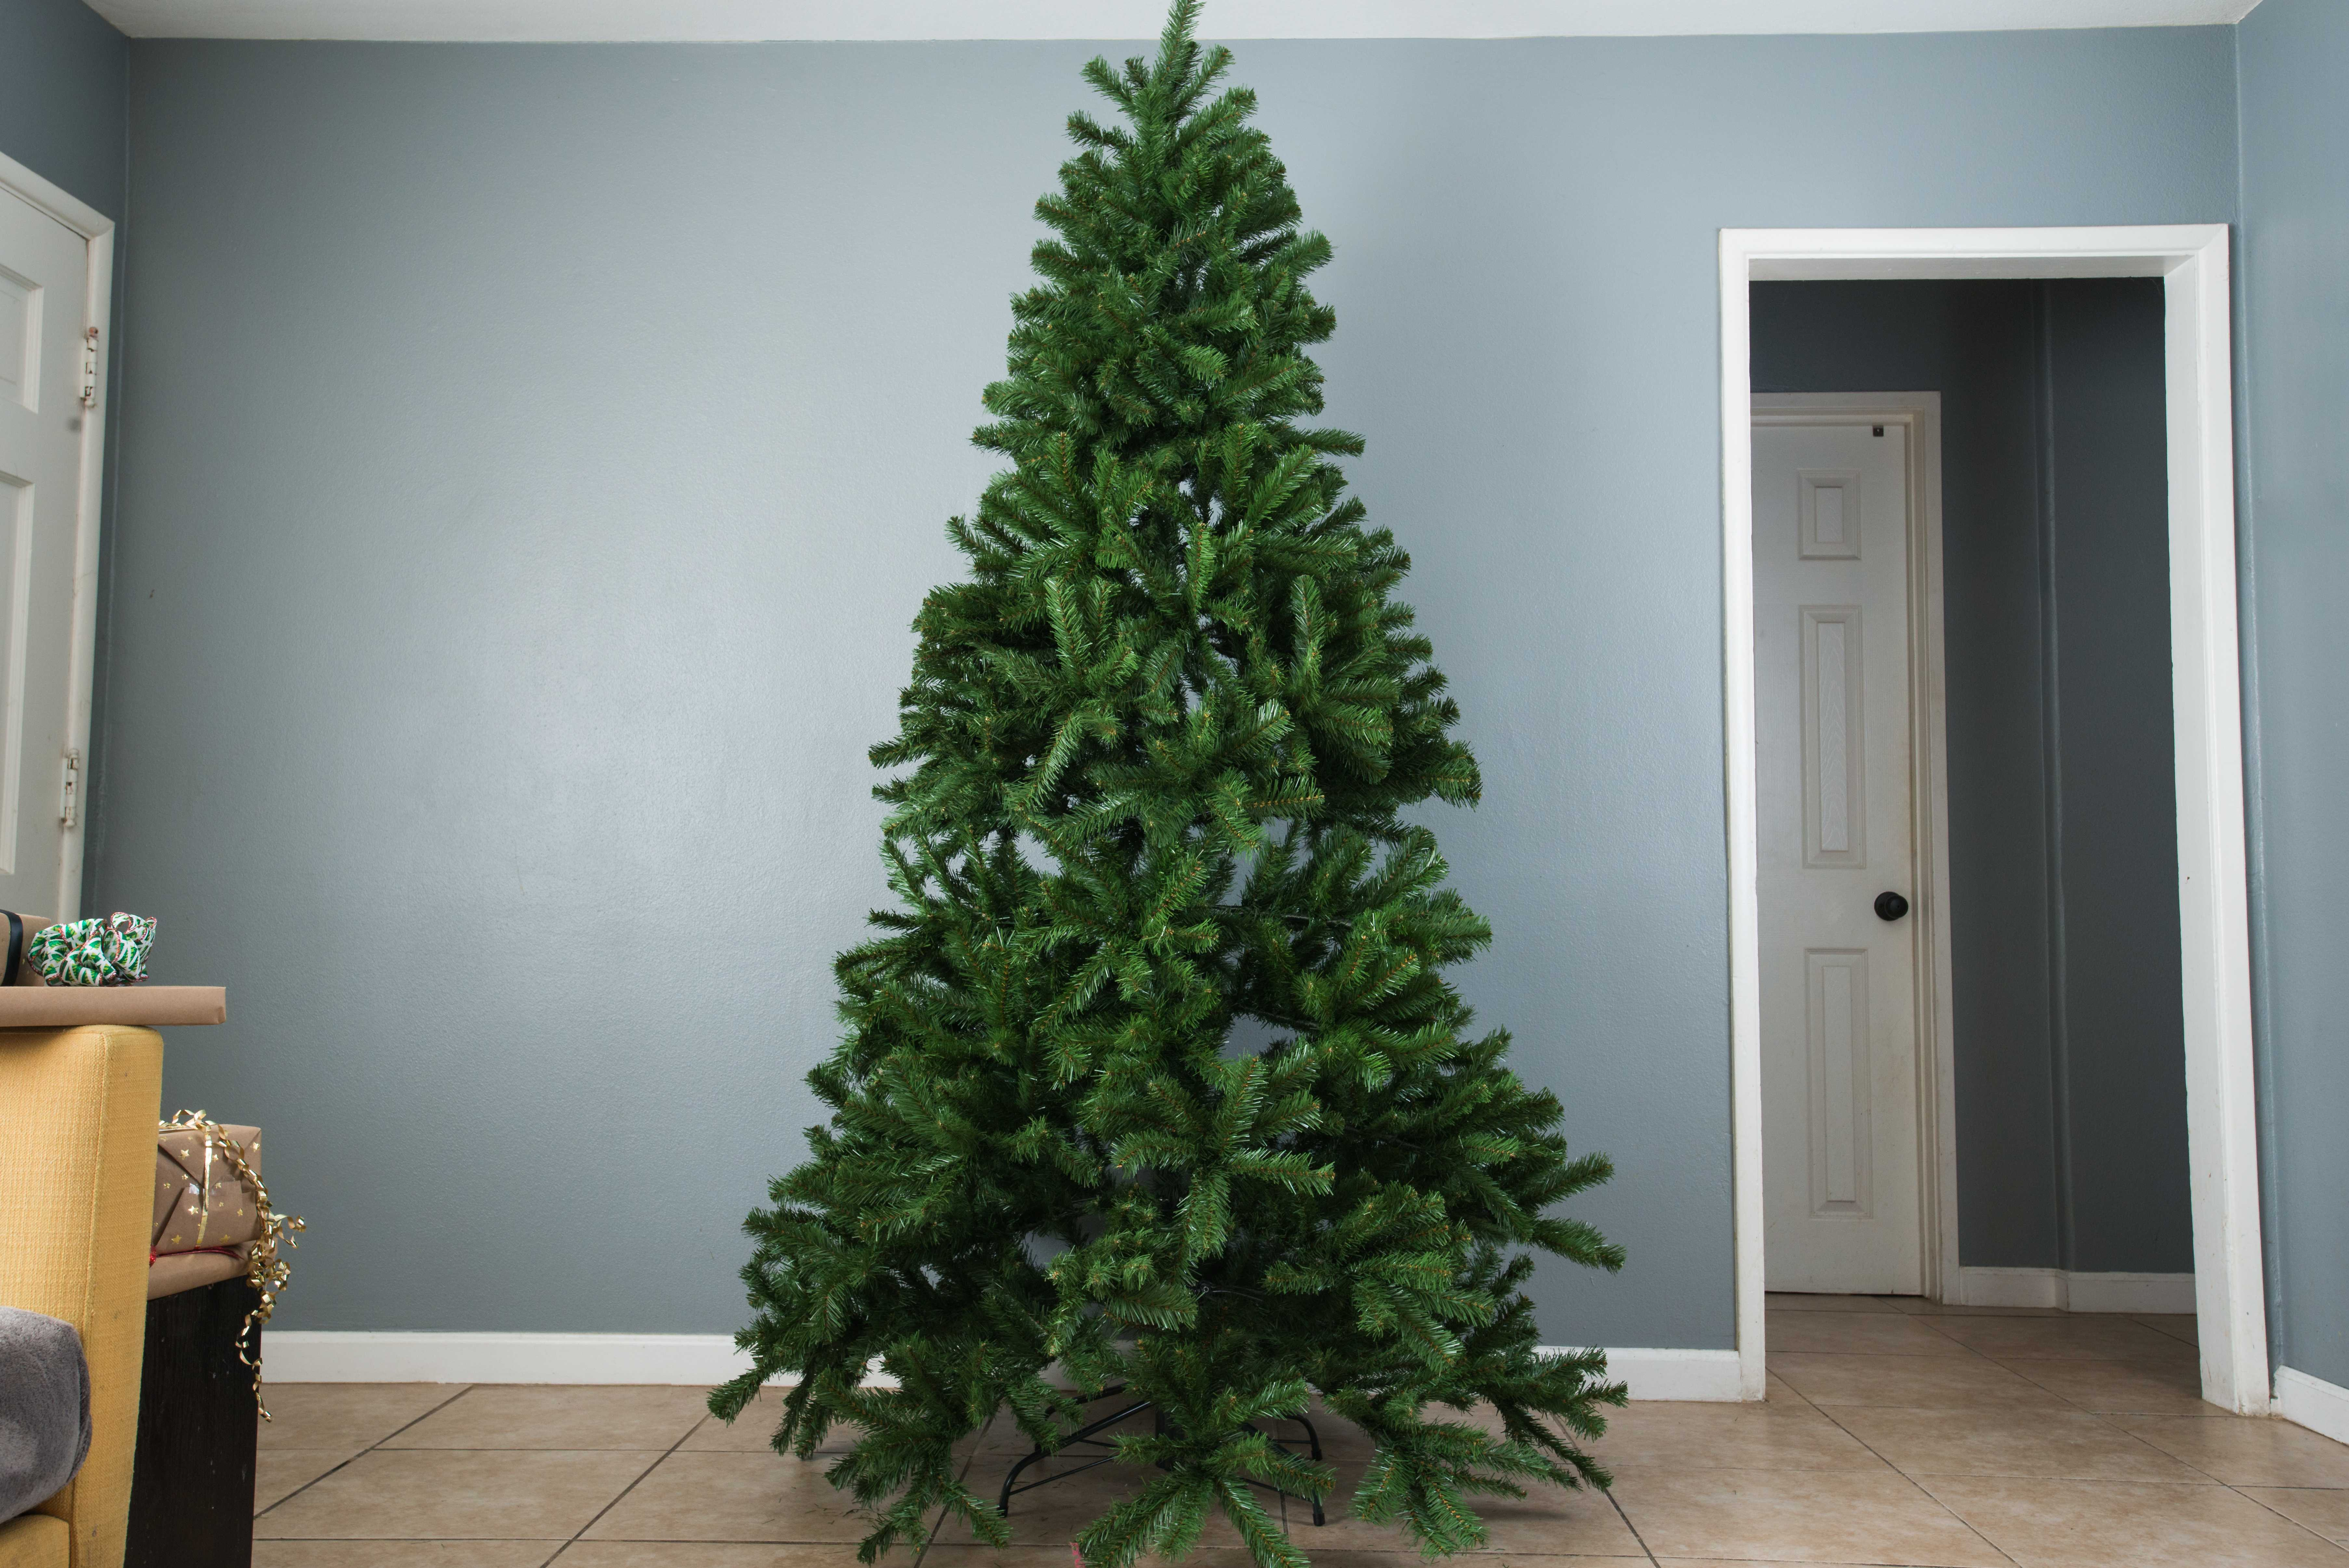 12 Days of Manual: Artificial vs. real Christmas trees